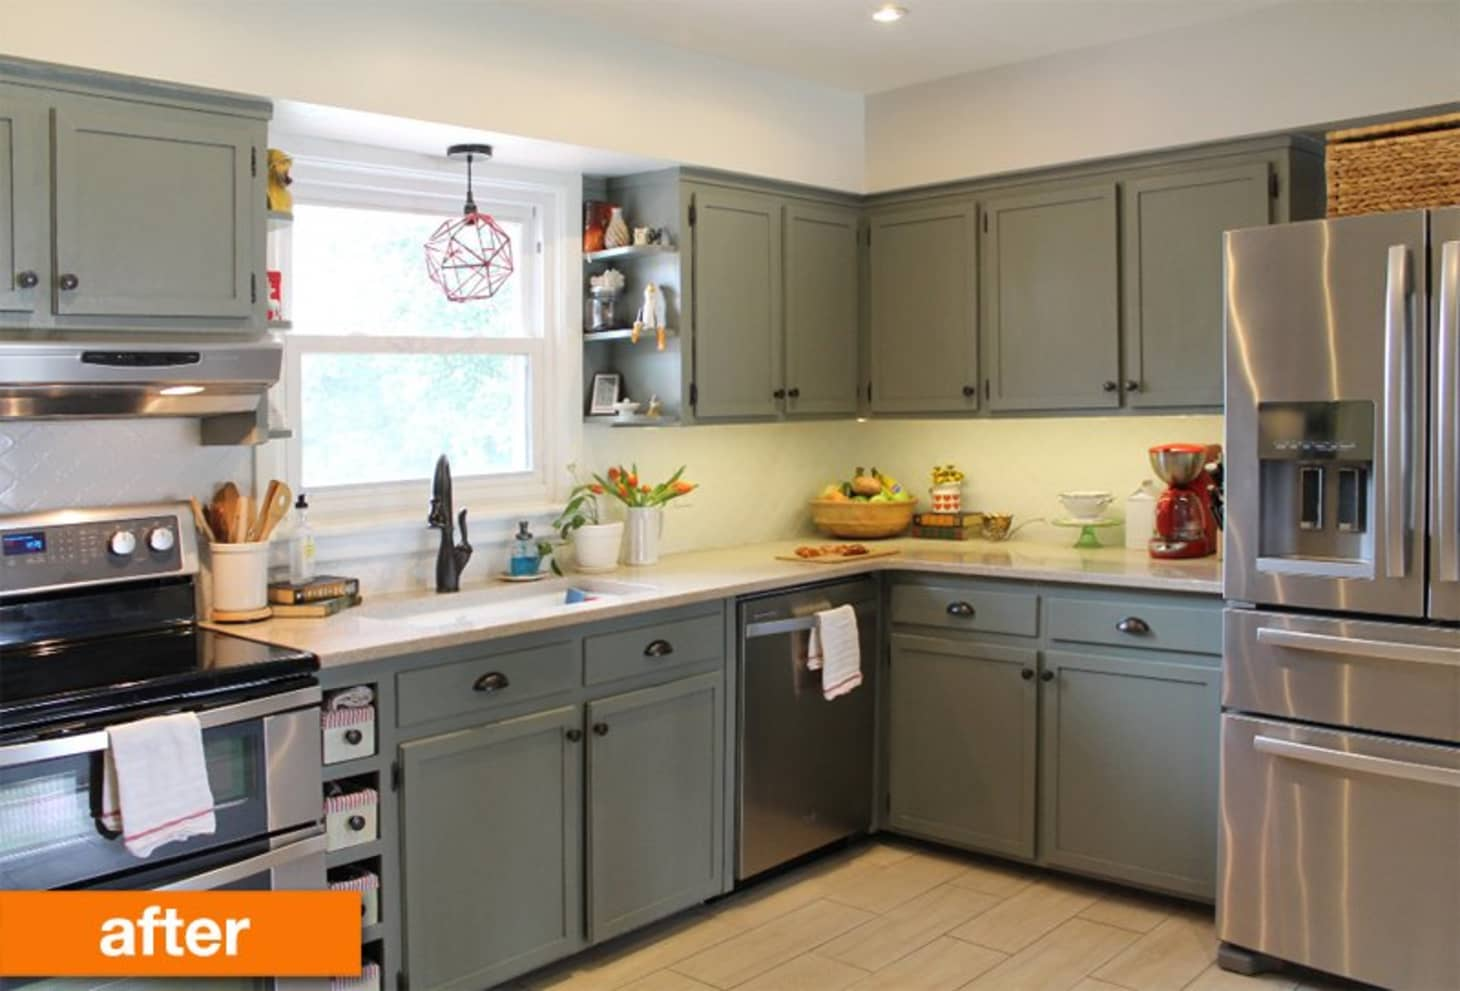 Before & After: A 1950s Kitchen Gets a Modern DIY Makeover ...